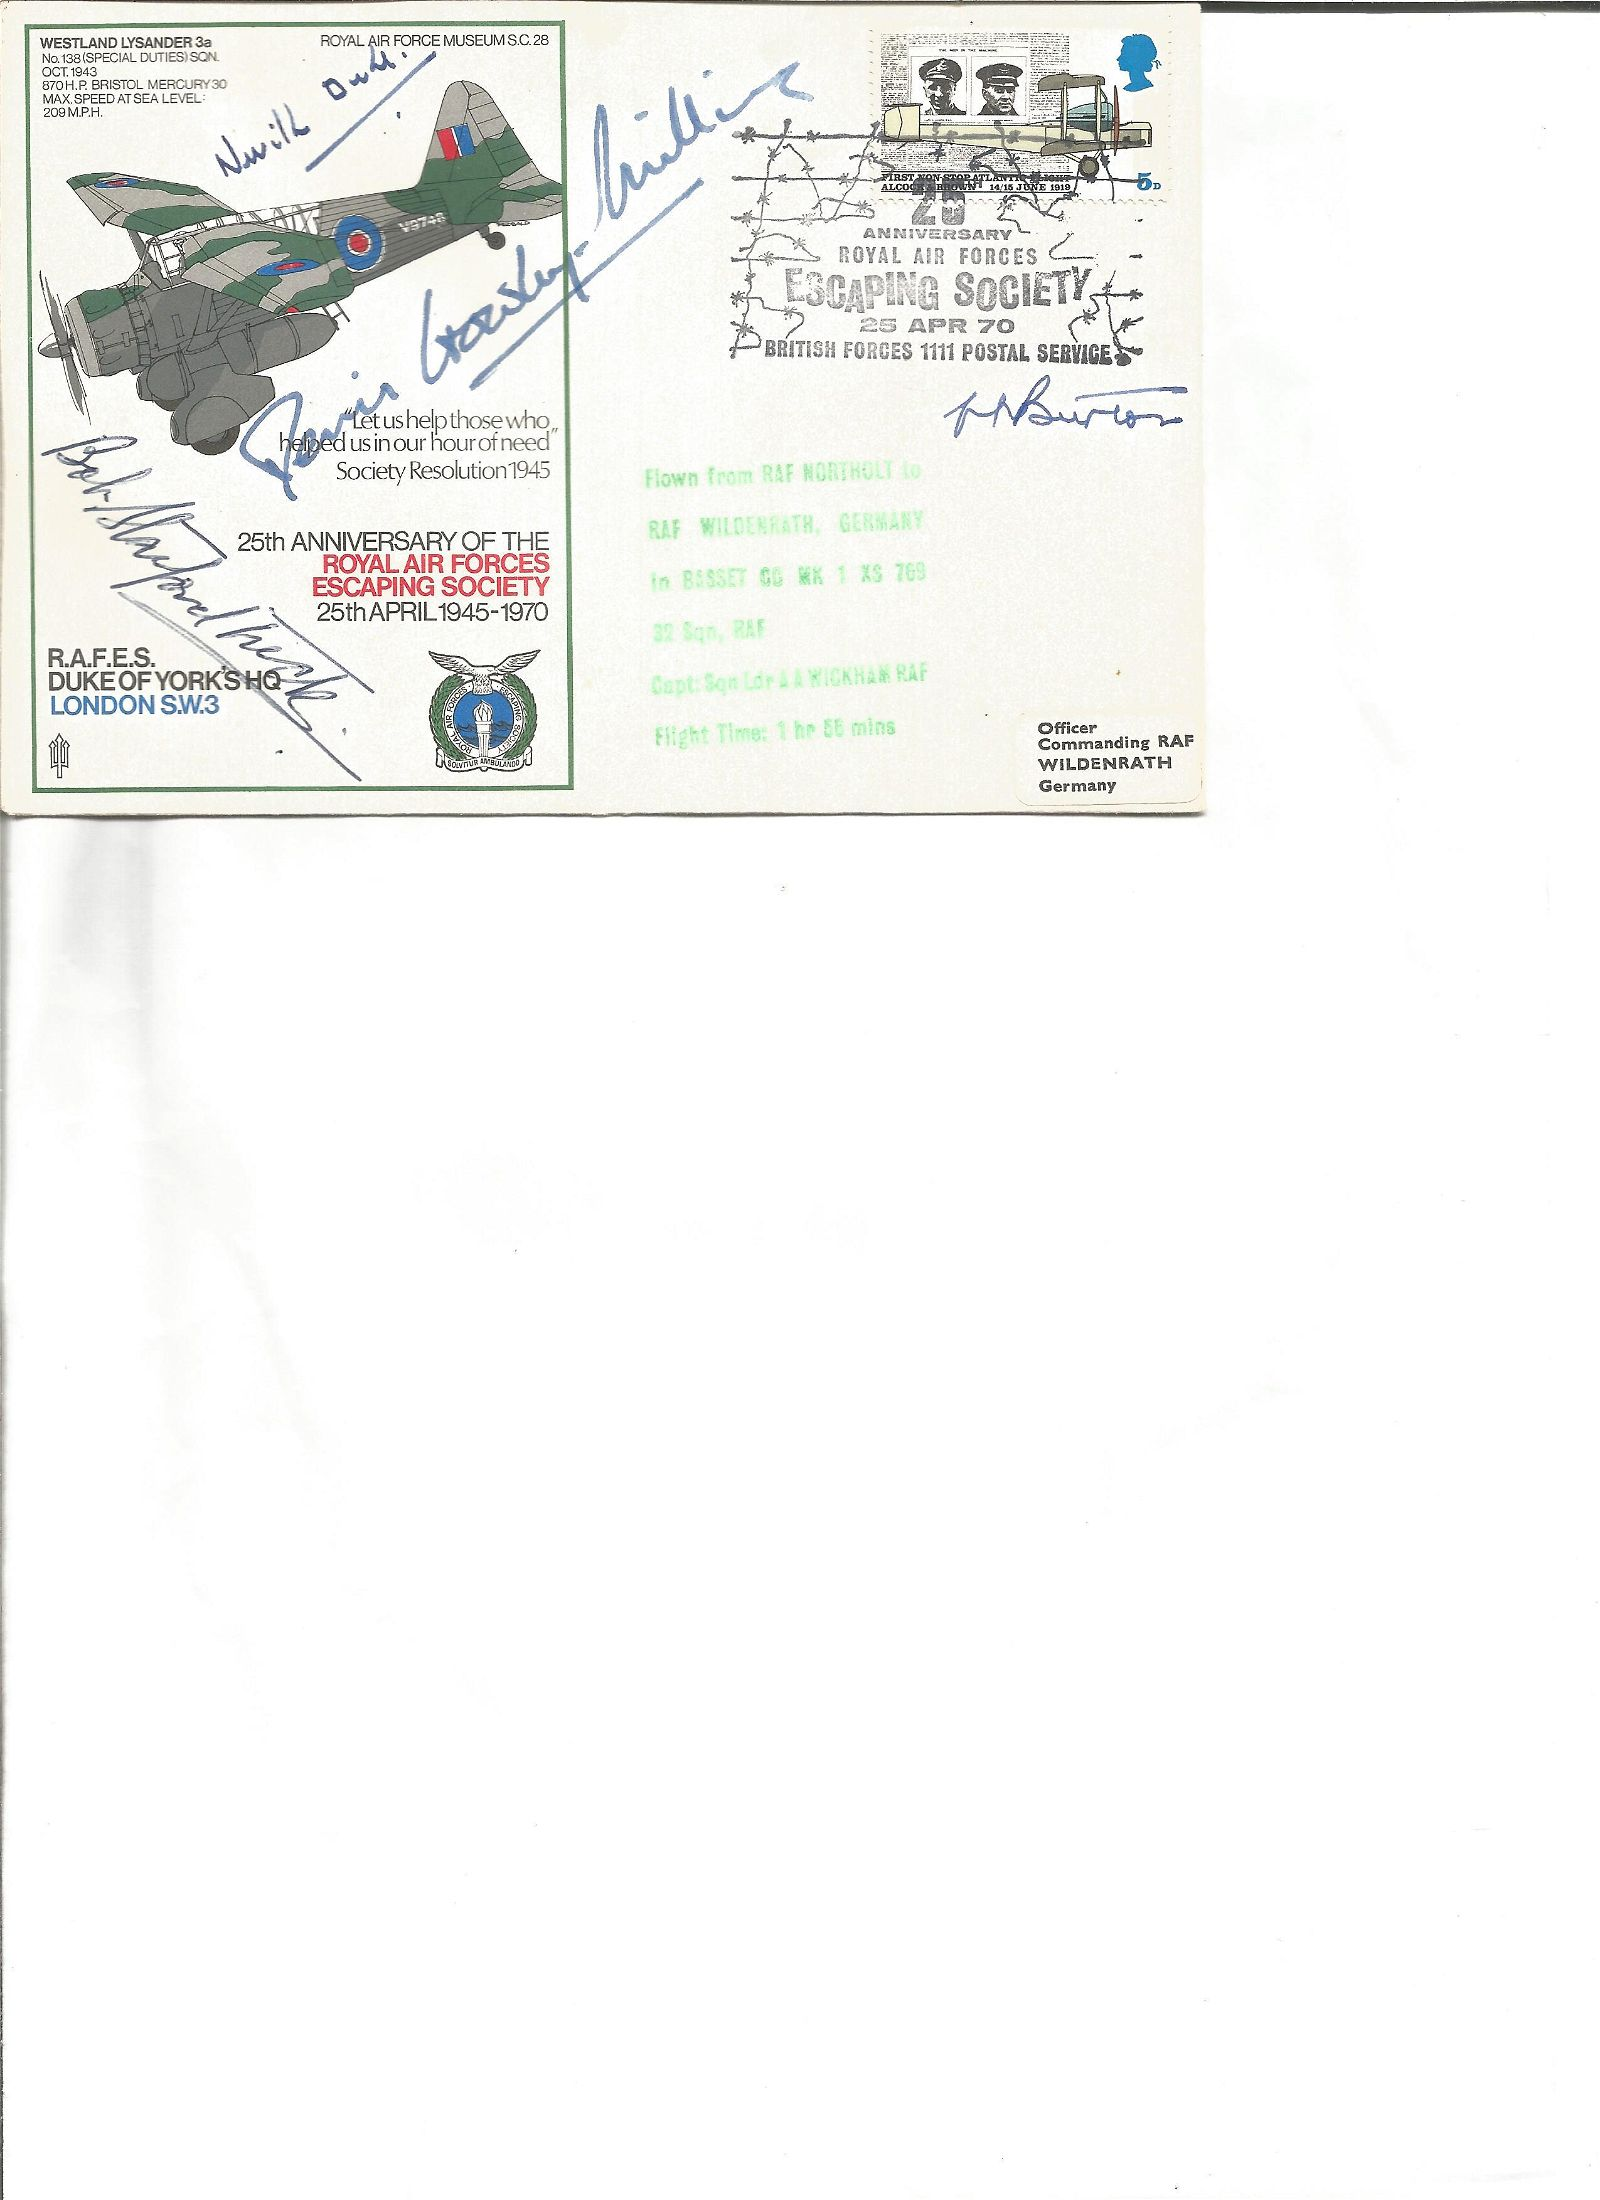 Rare WW2 RAF Escaping Society multiple signed cover.